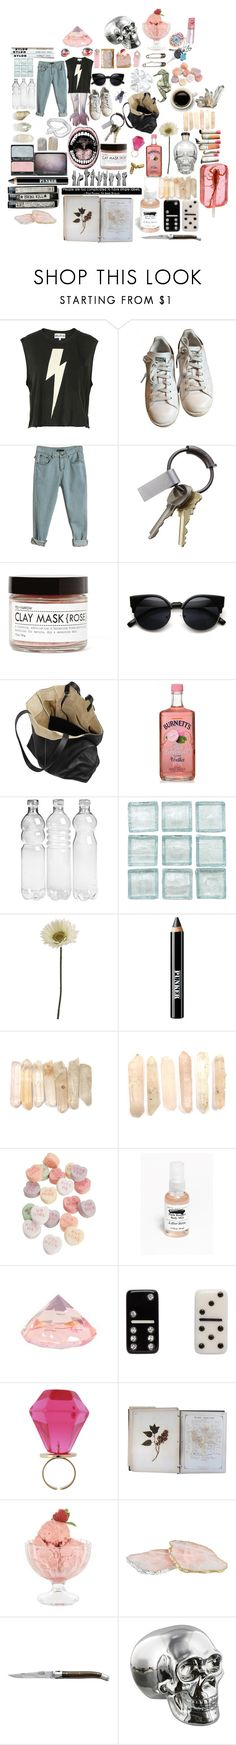 """Heart Of Glass"" by girlwiththepeacocktattoo ❤ liked on Polyvore featuring Wildfox, adidas, CB2, Fig+Yarrow, Proenza Schouler, NARS Cosmetics, Etiquette, Ardency Inn, Marc Jacobs and FOSSIL"